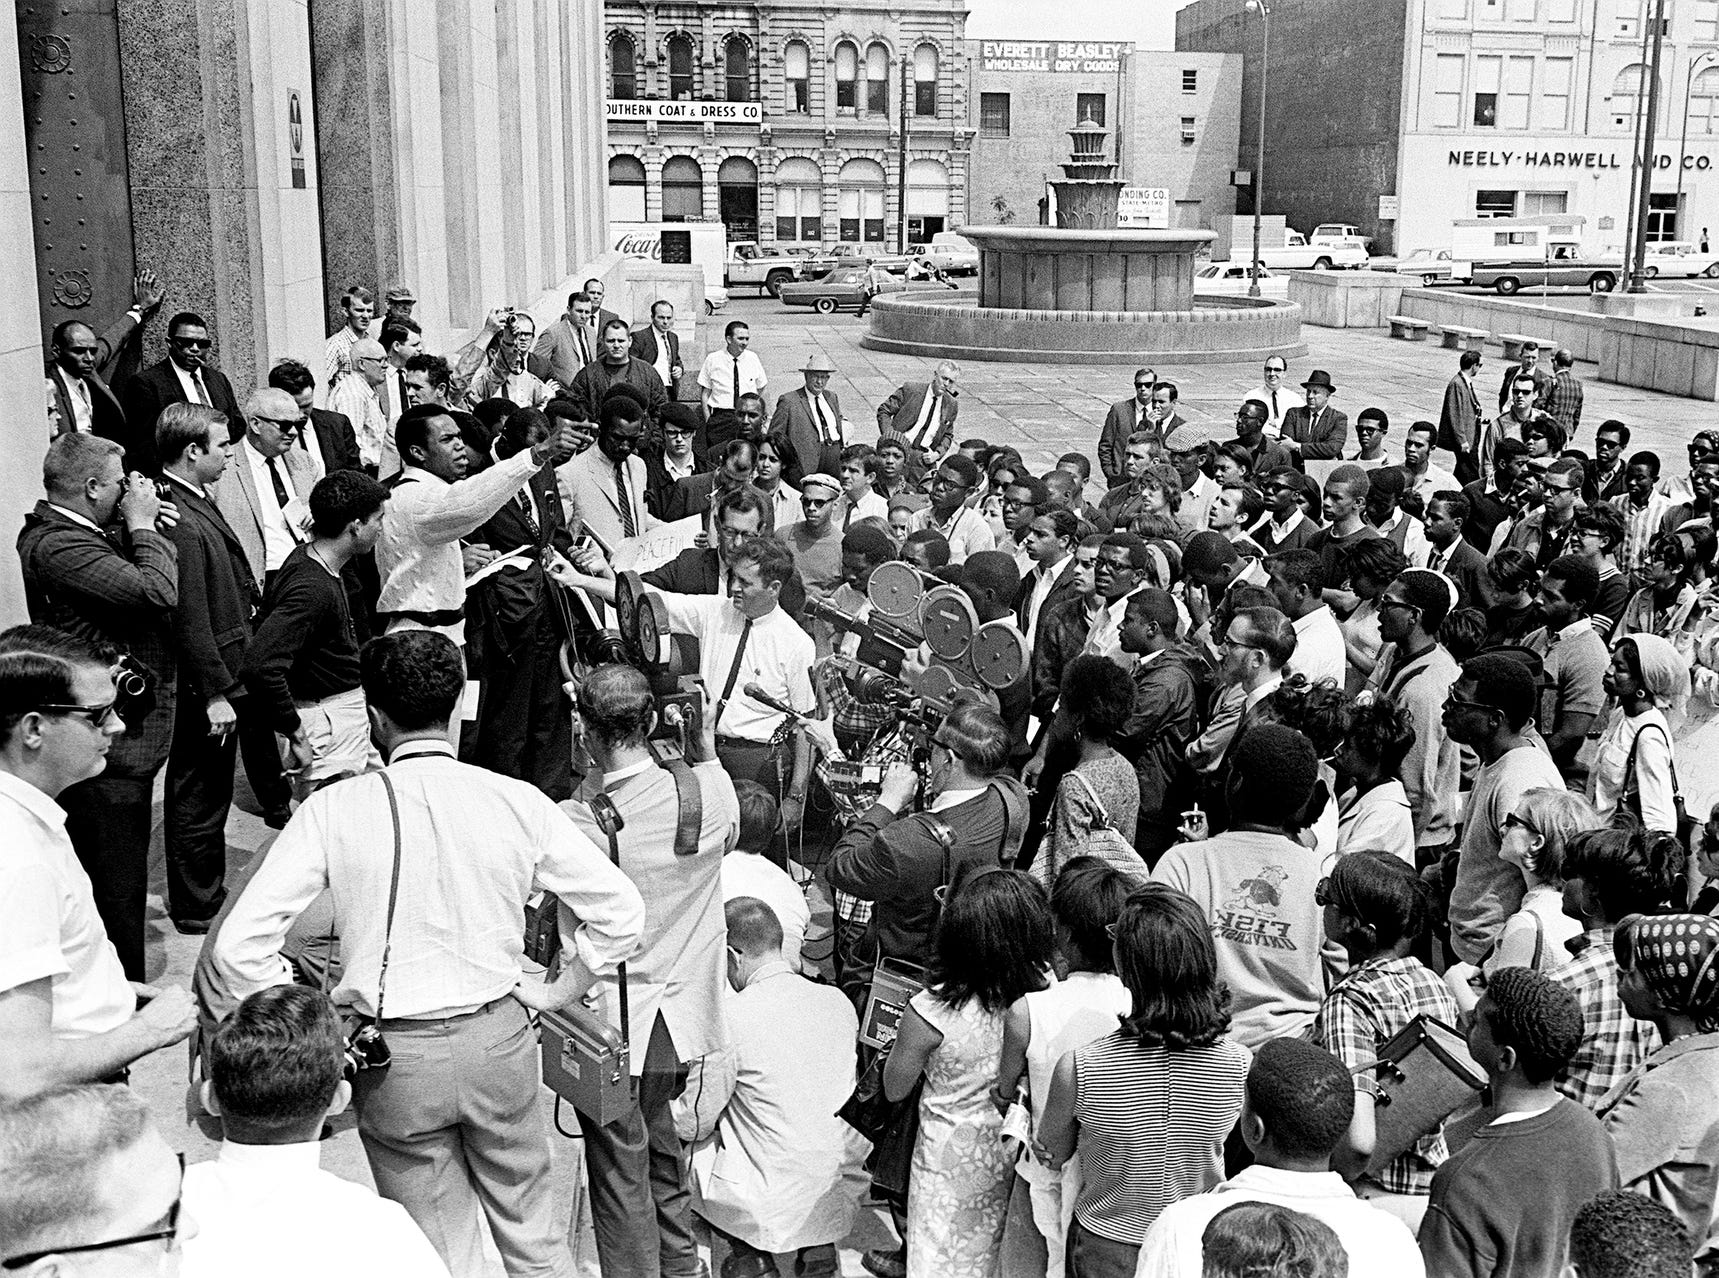 After marching peacefully from Fisk University, more than 200 demonstrators gather April 14, 1967, at the Metro Courthouse. There the speakers led the crowd in cheers for black power and condemned police actions in the recent rioting.